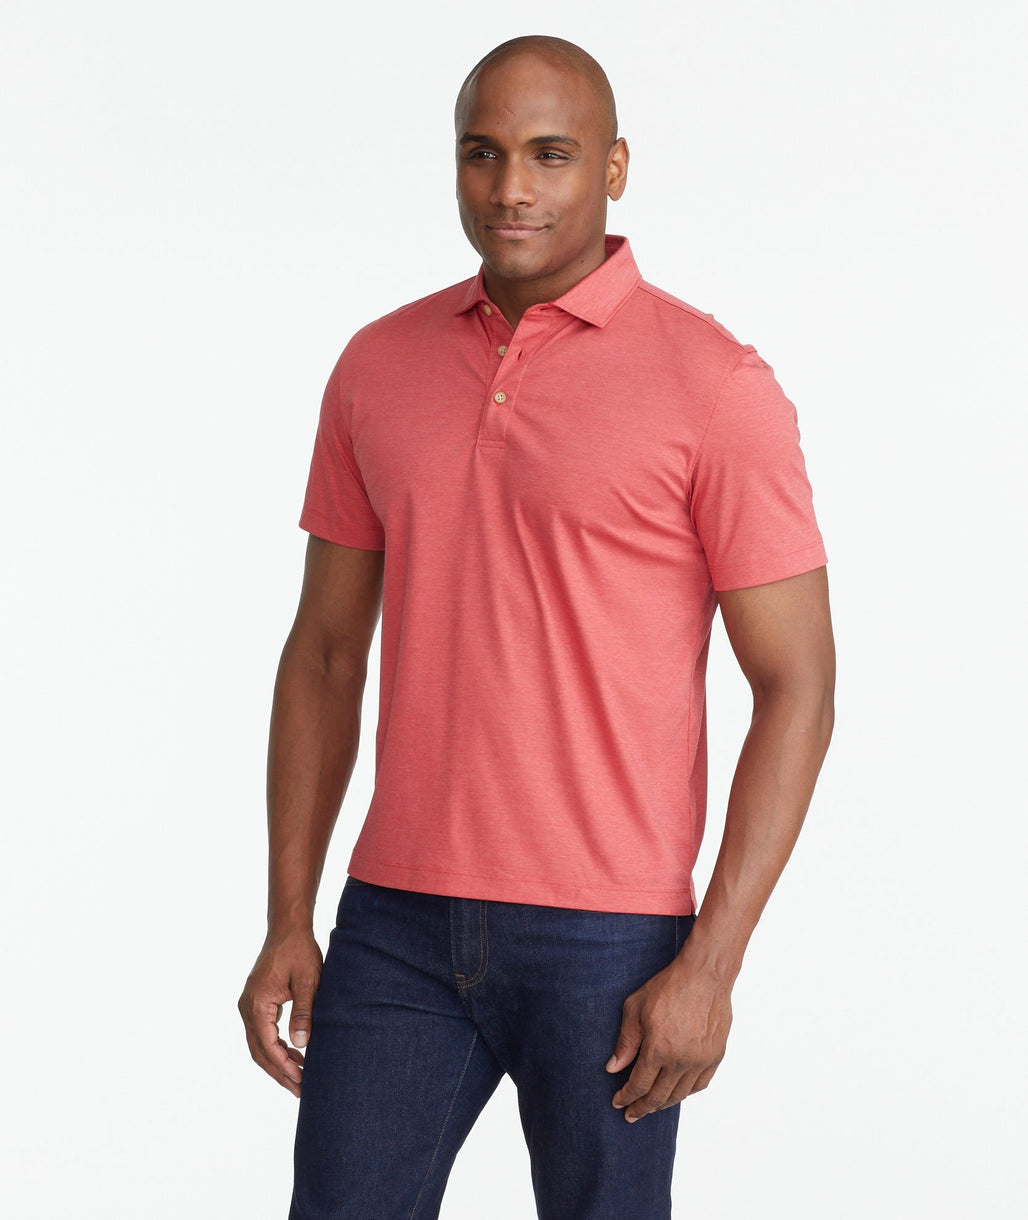 Model wearing a Red Luxe Wrinkle-Free Pique Polo